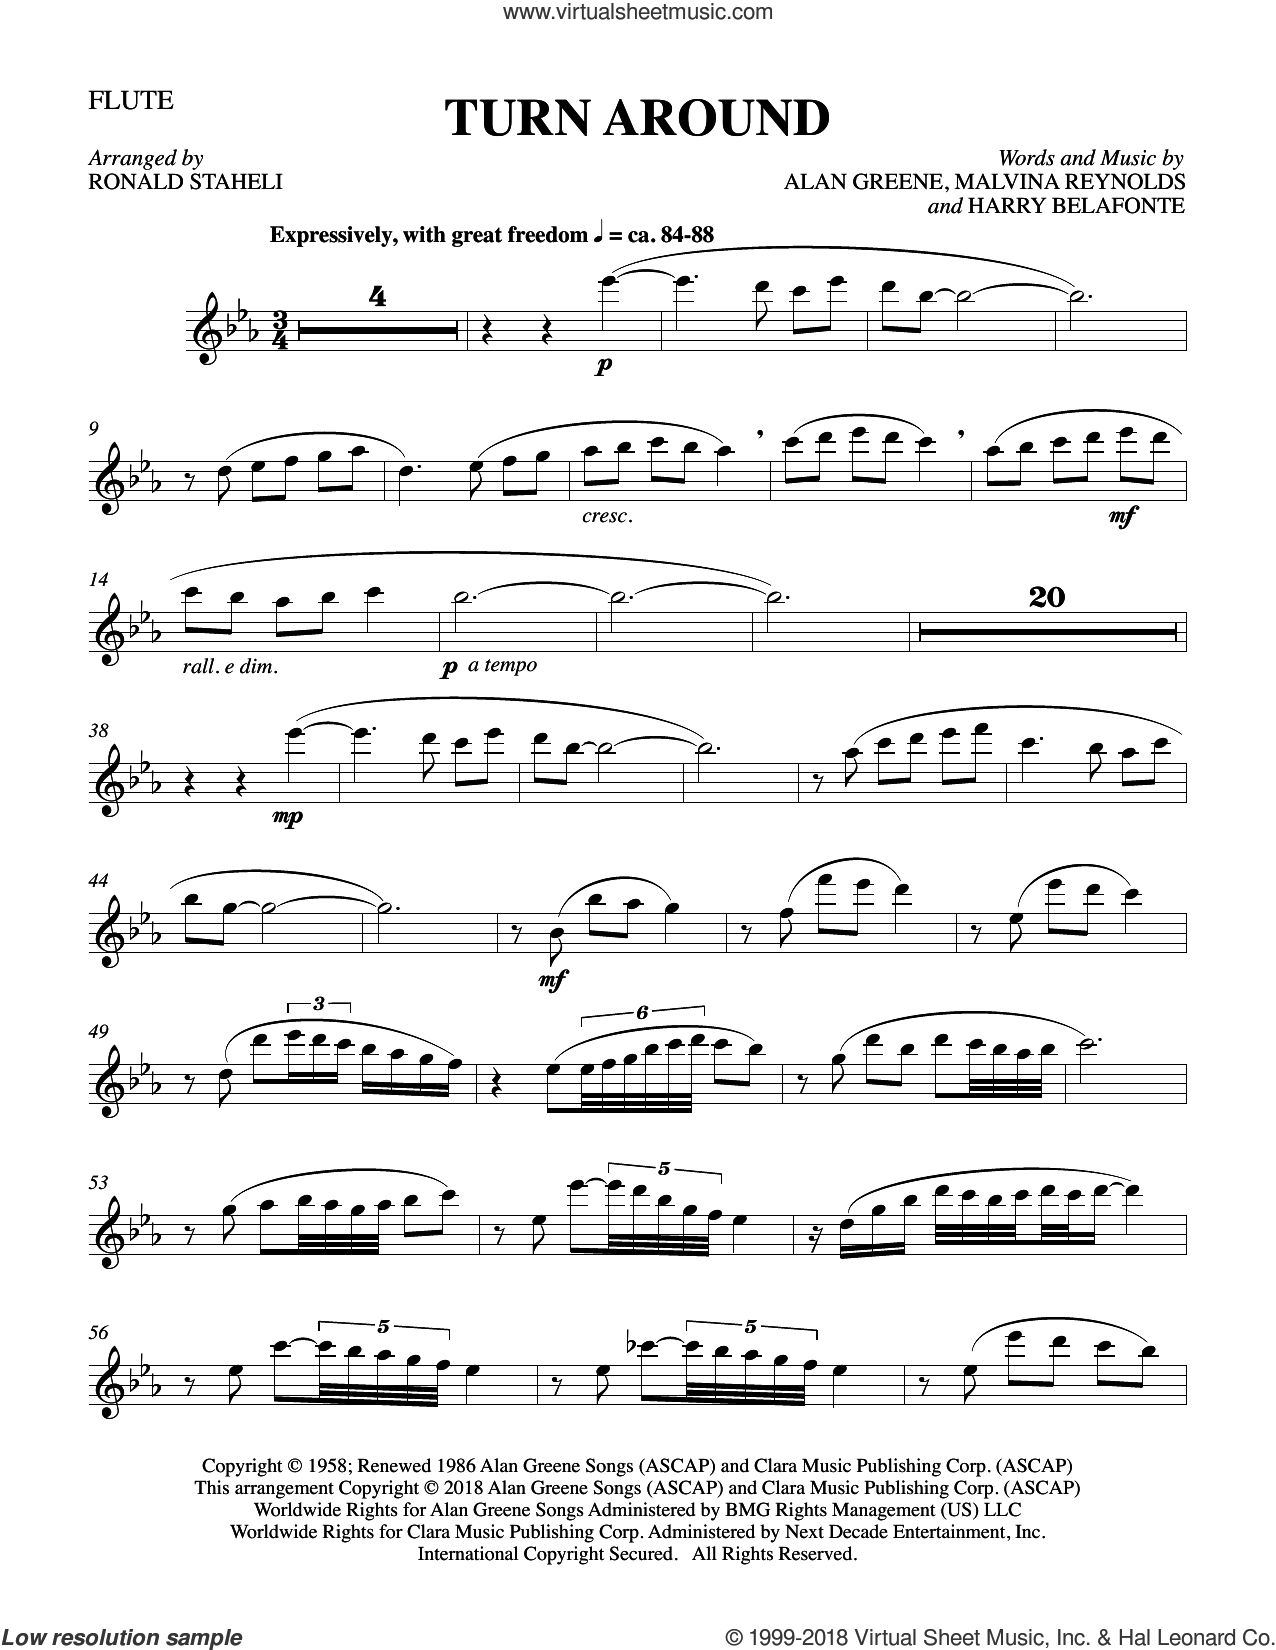 Turn Around (arr. Ronald Staheli) sheet music for orchestra/band (flute) by Malvina Reynolds, Harry Belafonte, Sonny & Cher and Alan Greene, intermediate skill level